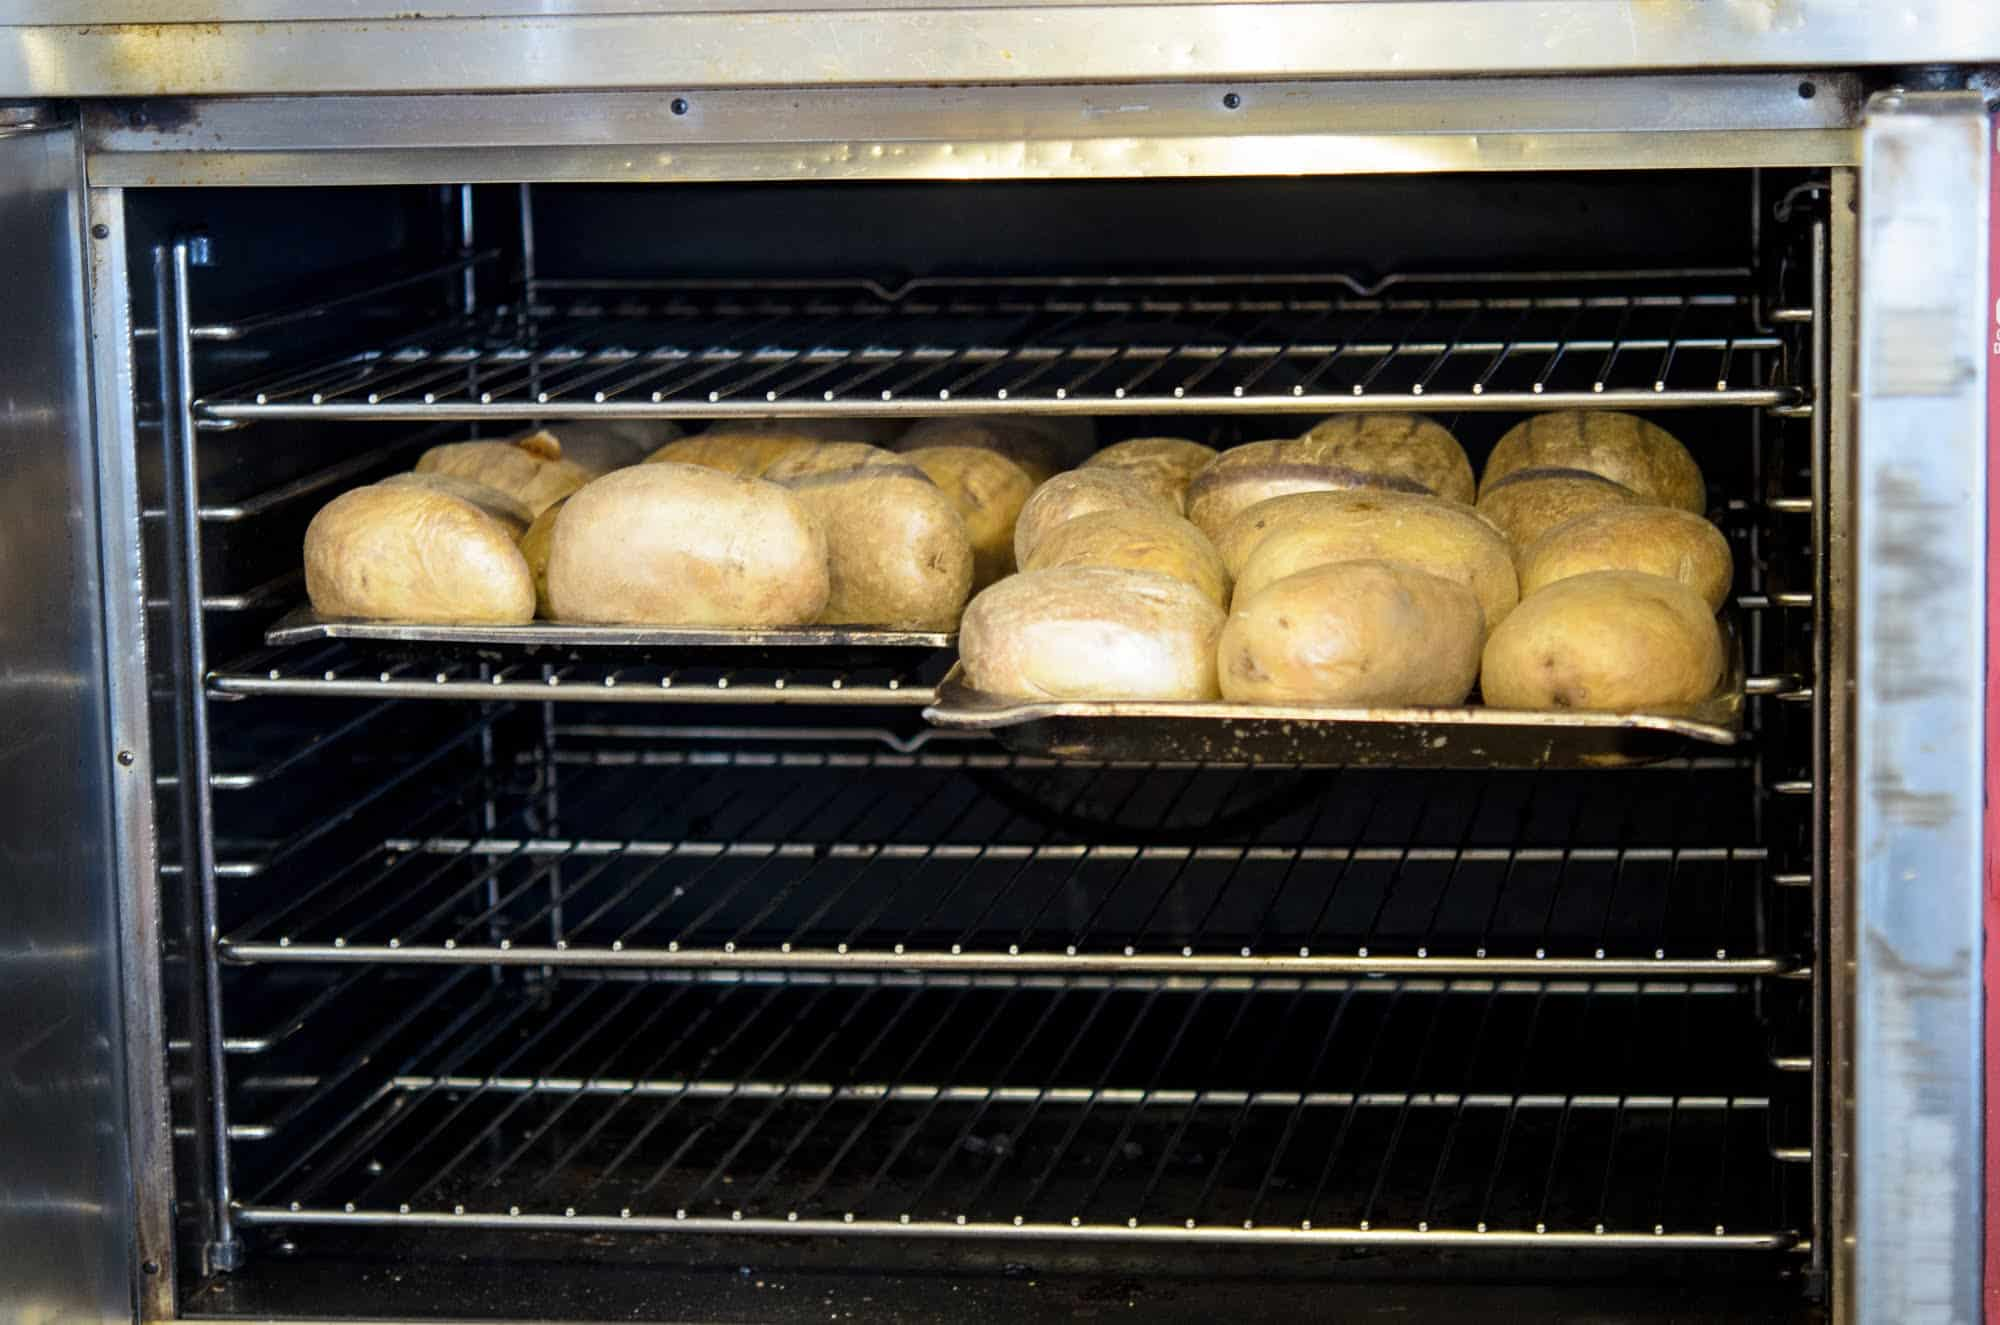 Potatoes go into the oven in the Baked Potato Shop